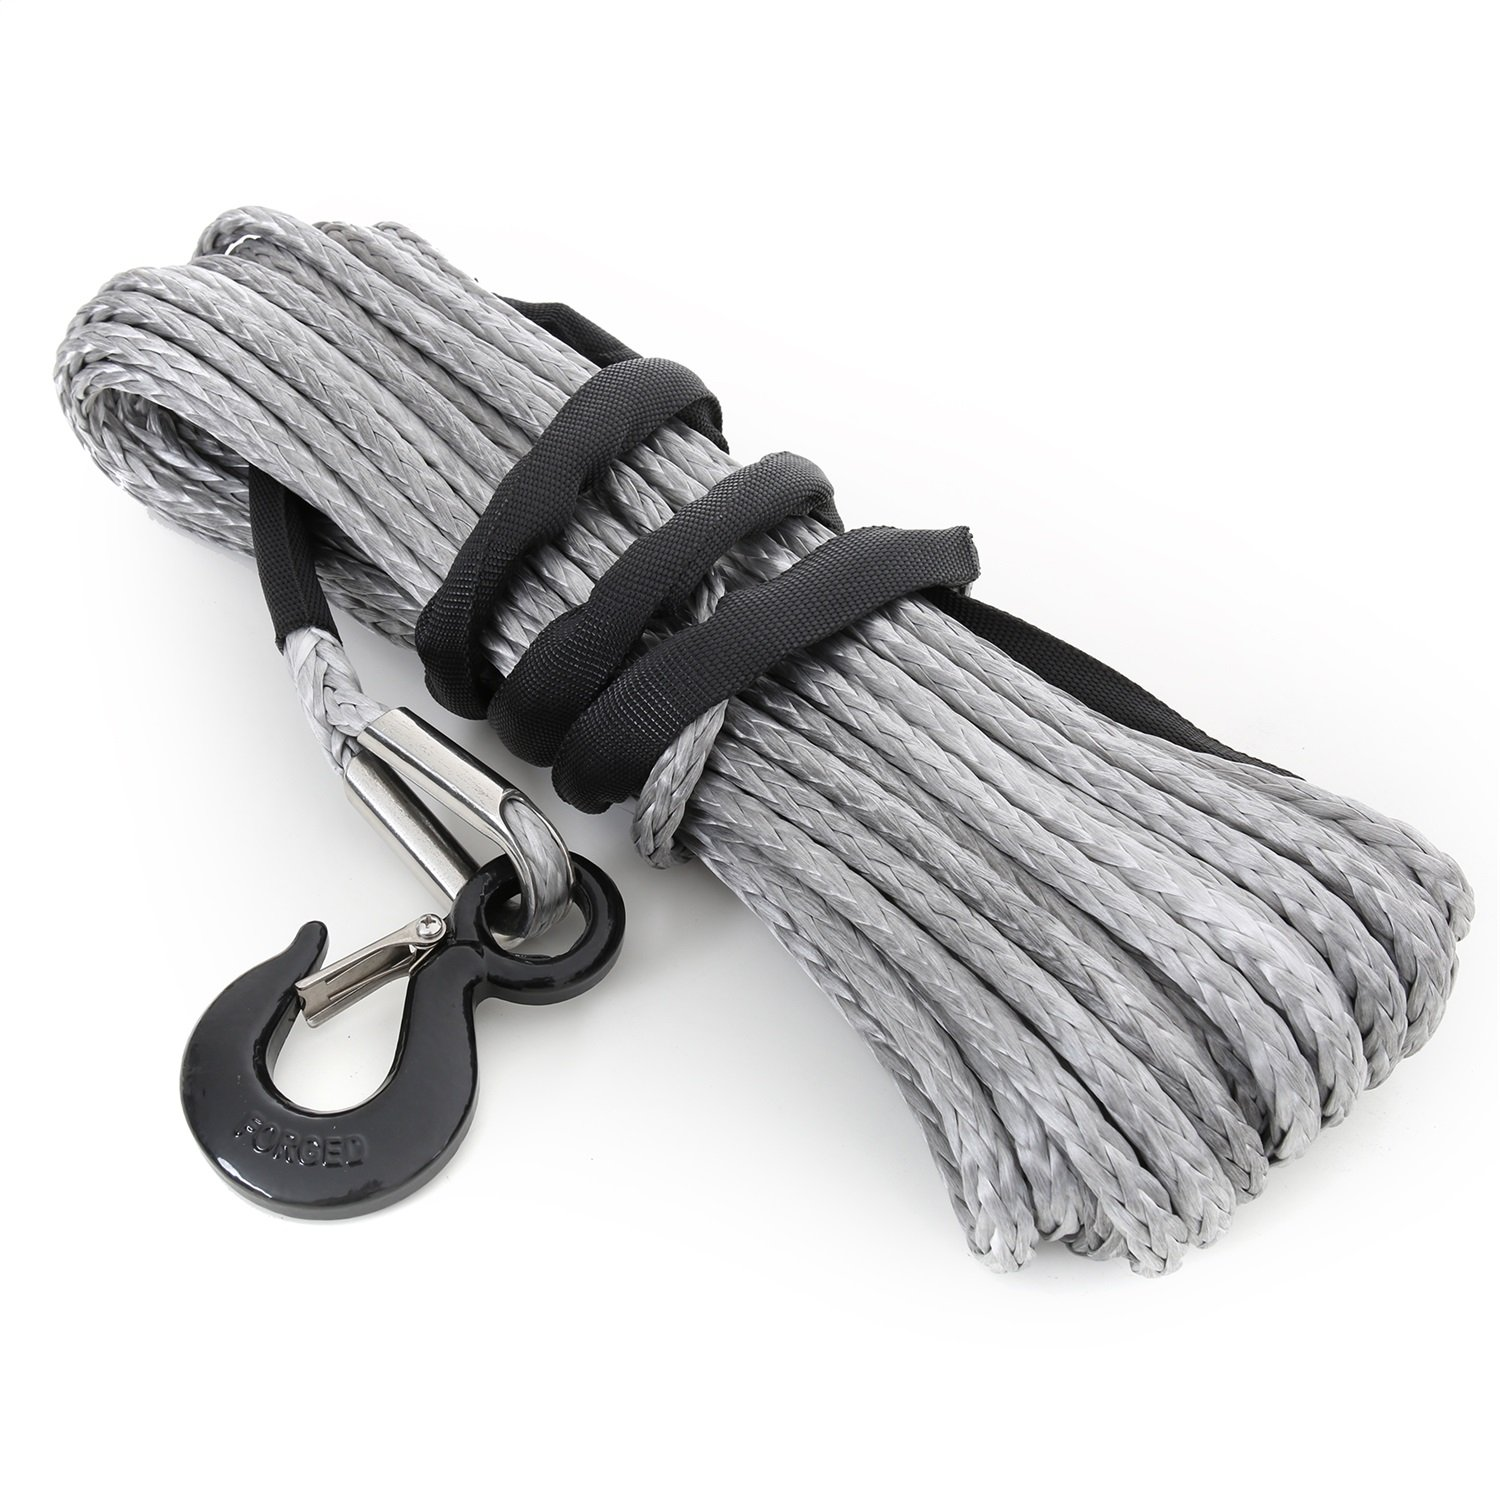 Smittybilt 97710 XRC Universal Synthetic Rope